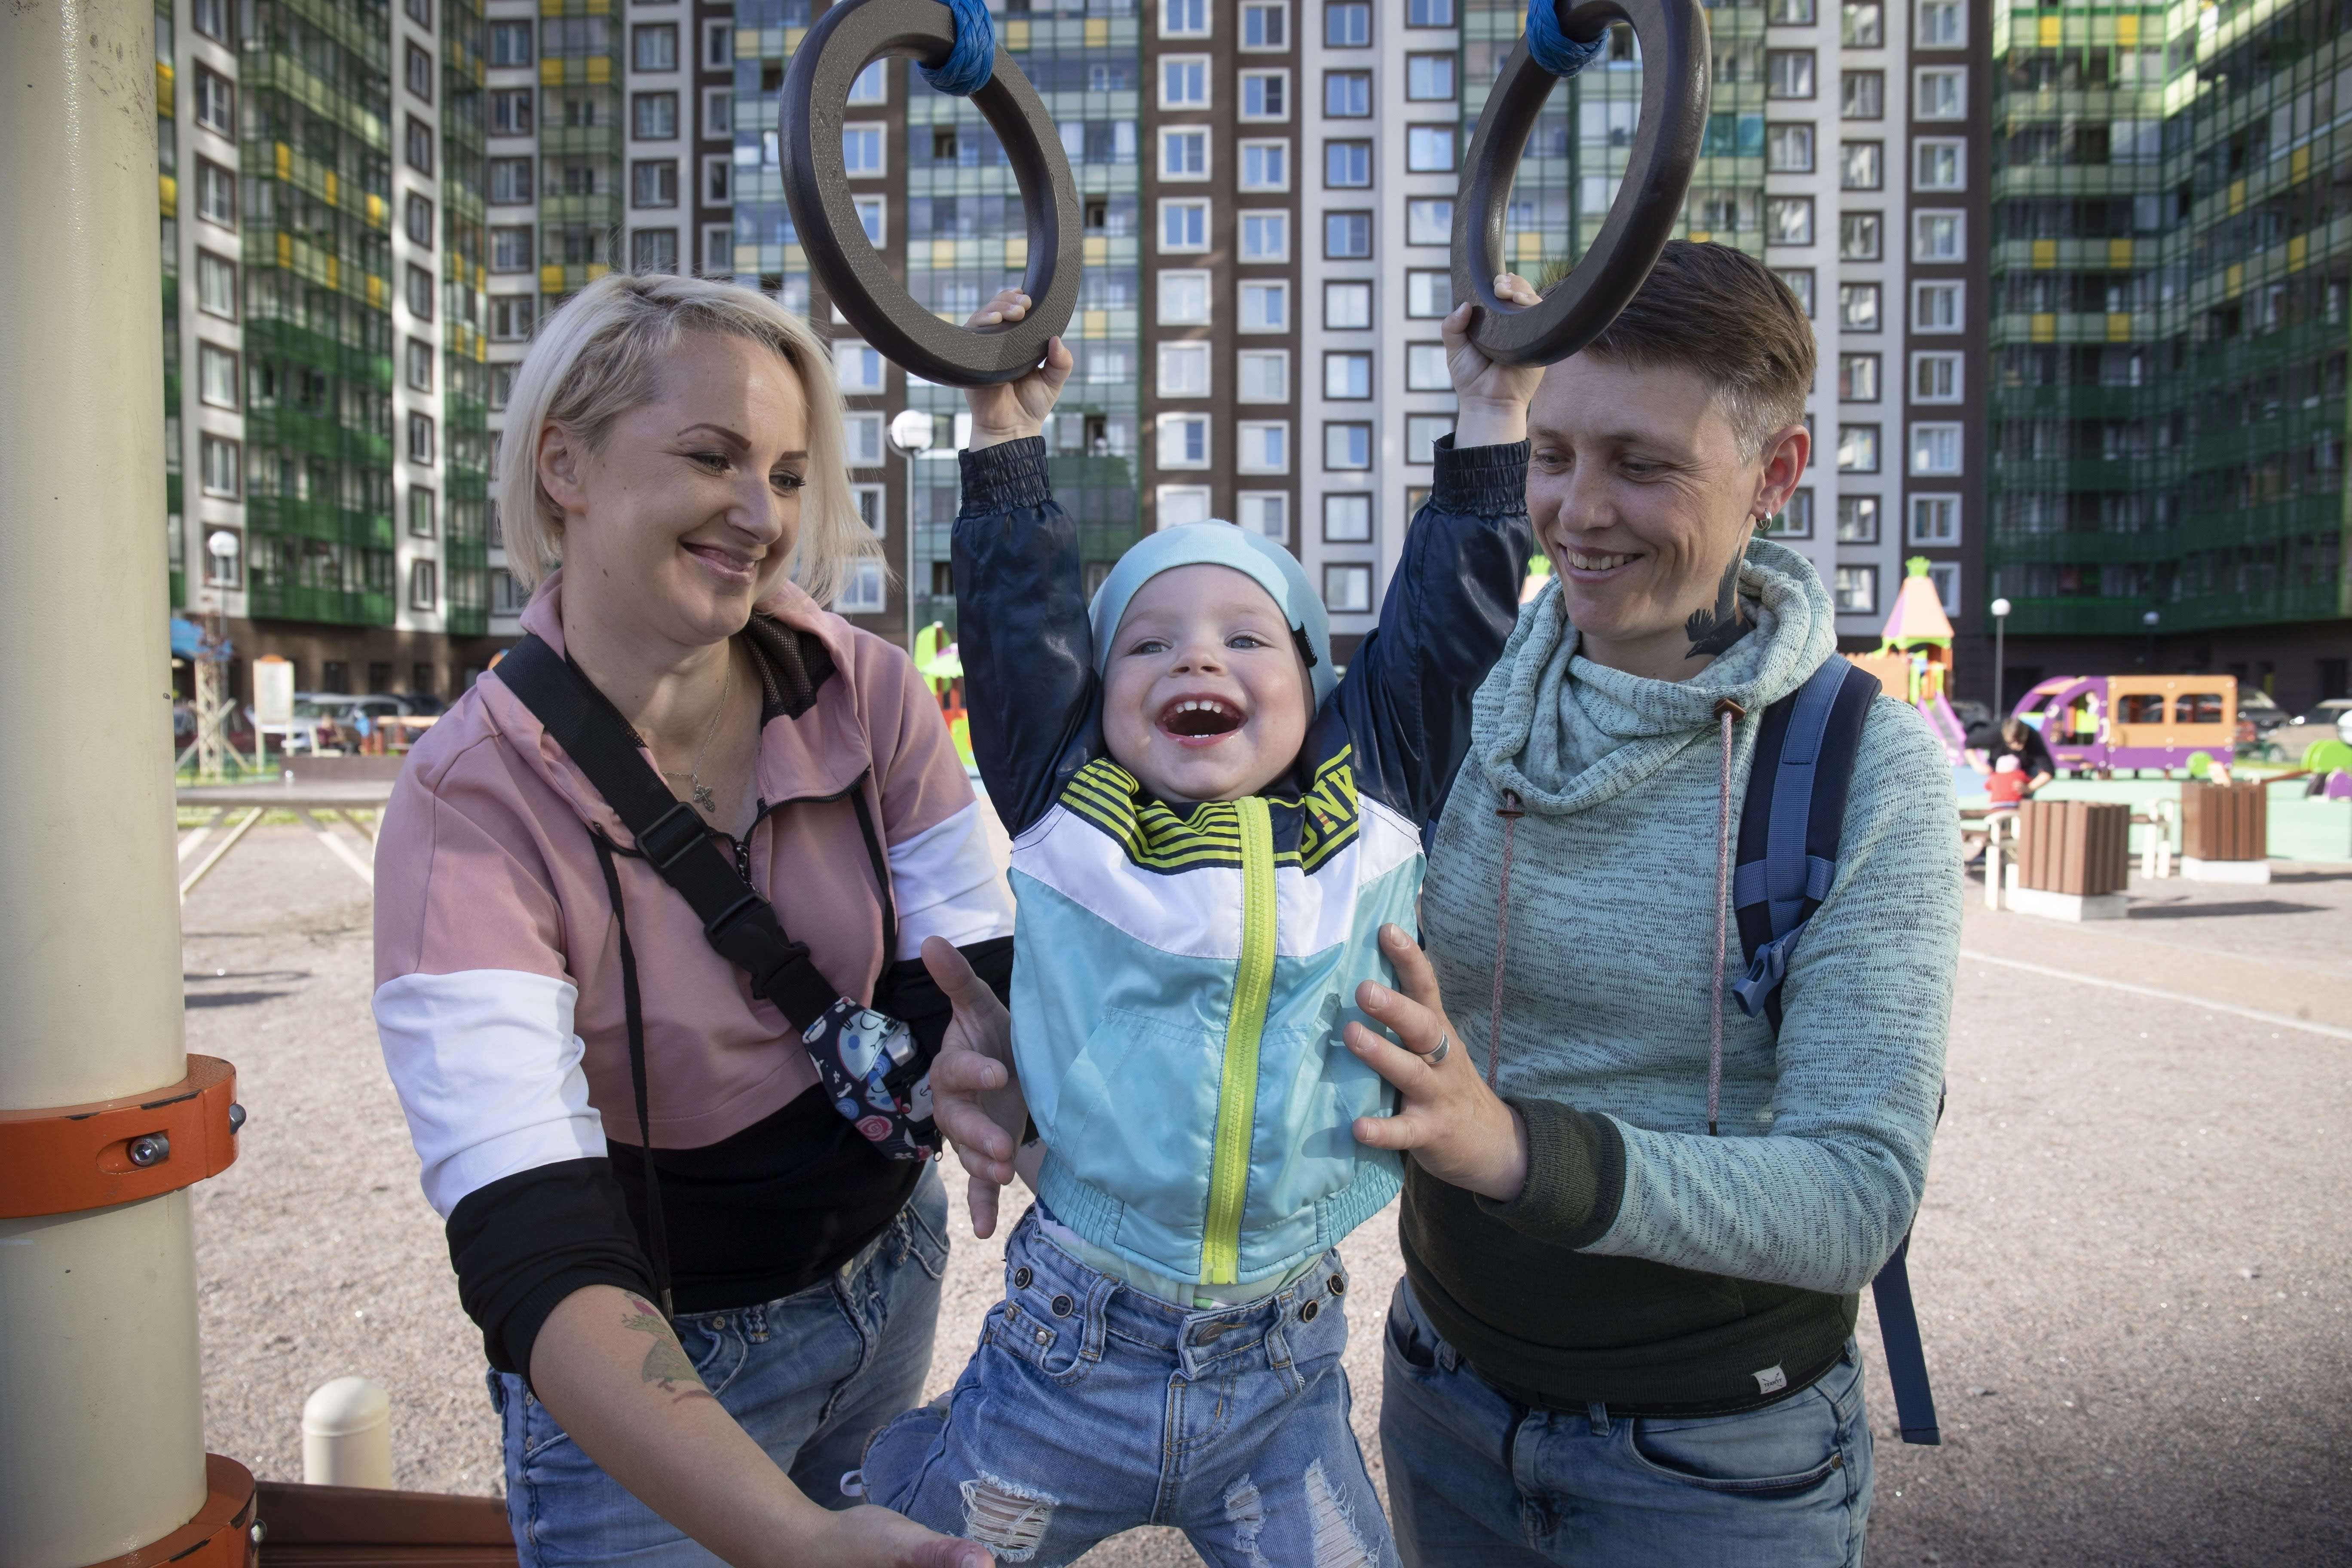 Irina, right, and Anastasia Lagutenko play with their son, Dorian, at a playground in St. Petersburg, Russia, July 2, 2020. Their 2017 wedding wasn't legally recognized in Russia. Any hopes they could someday officially be married in their homeland vanished July 1 when voters approved a package of constitutional amendments, one of which stipulates that marriage in Russia is only between a man and a woman. (AP Photo)